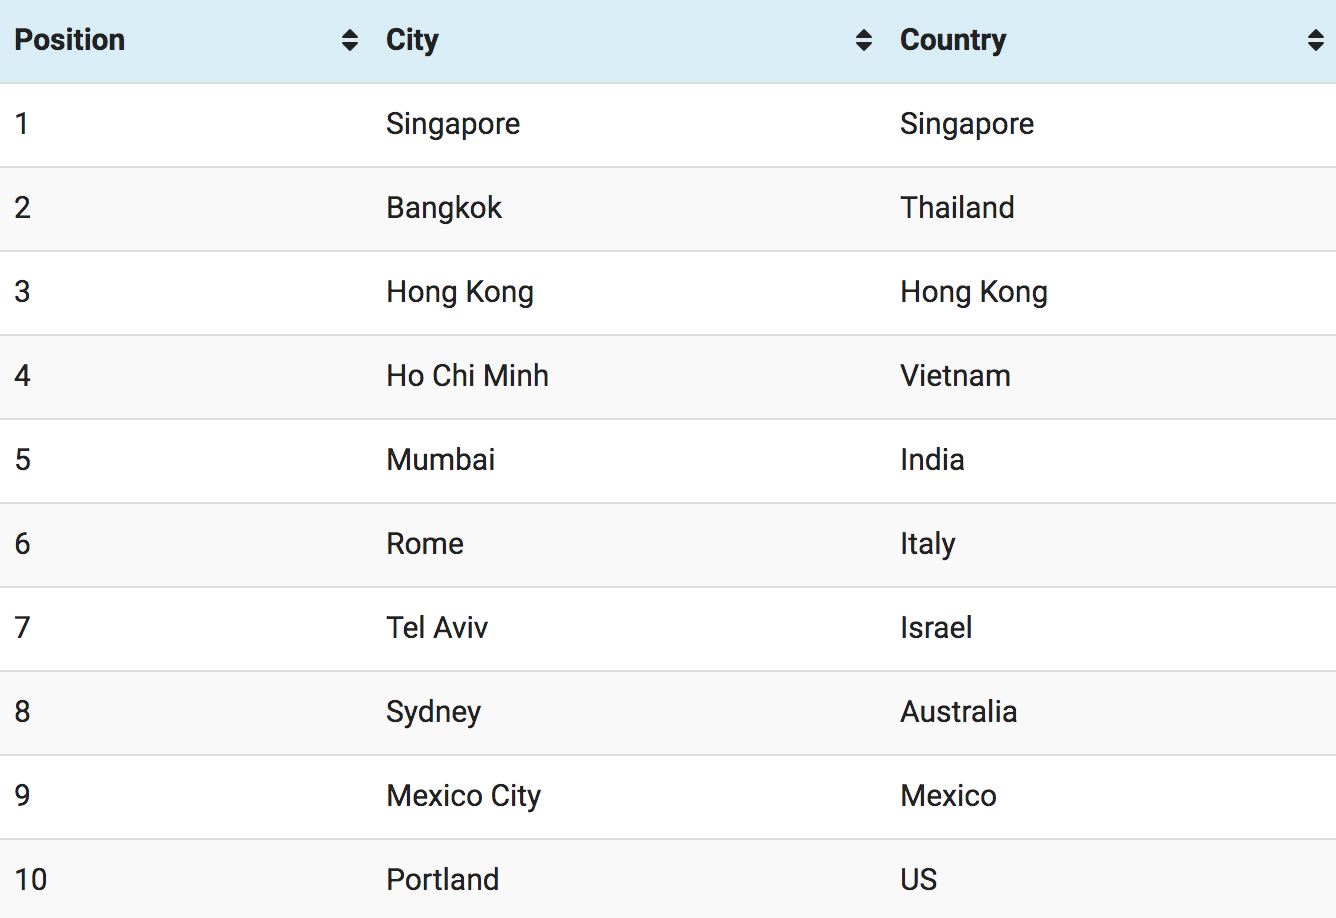 NO MALAYSIAN CITIES IN THE TOP 10?!